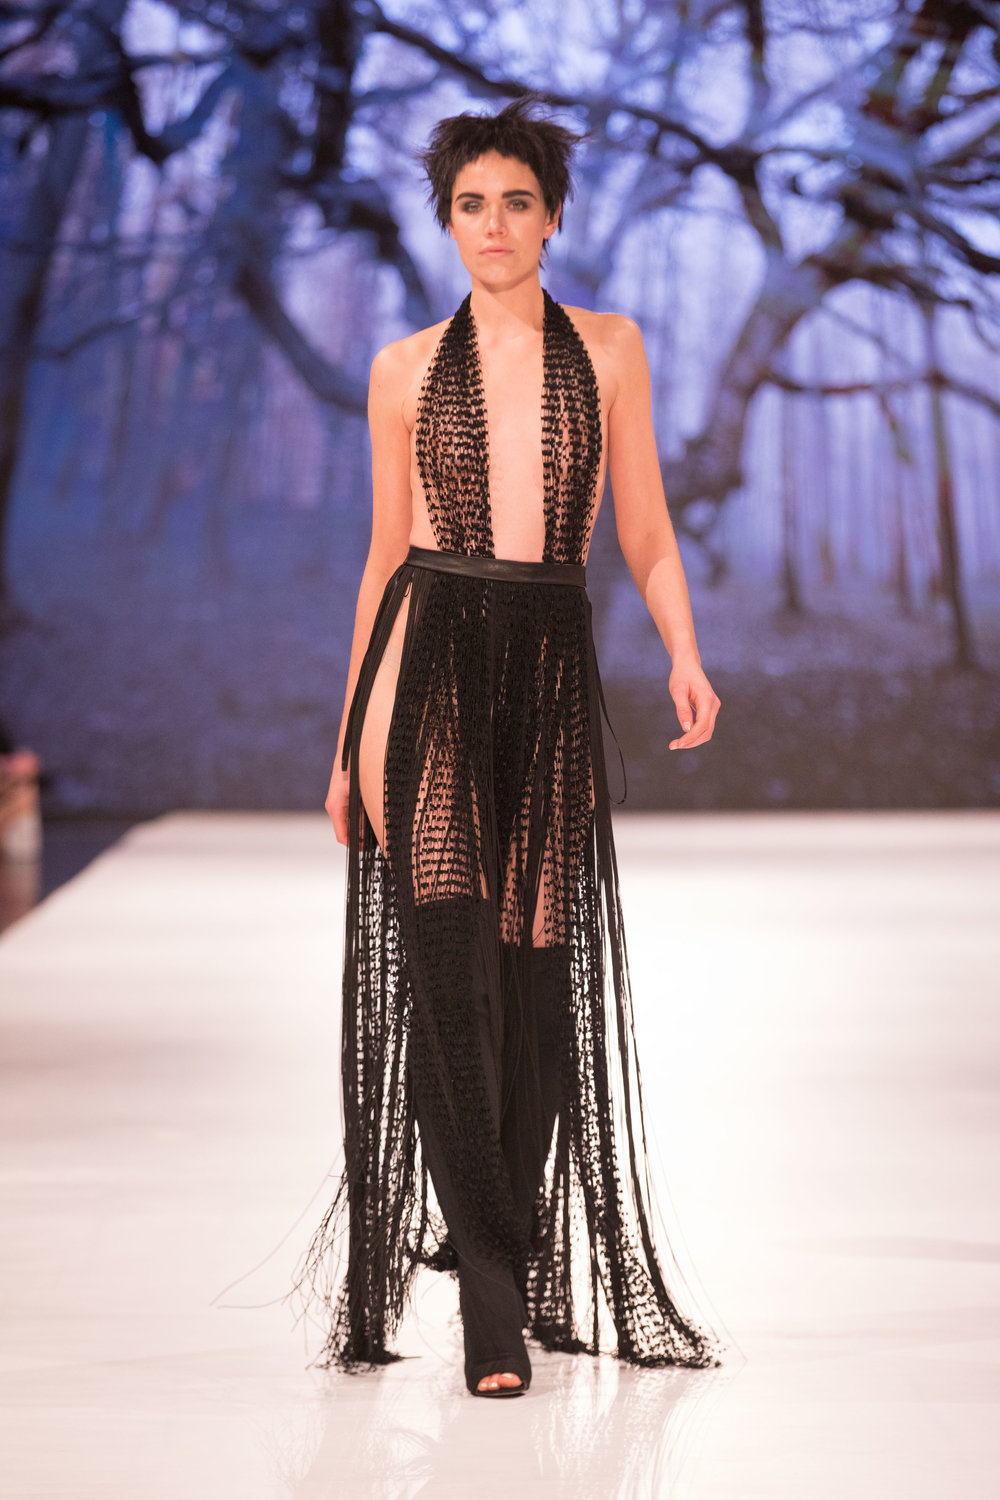 COUTURE_RUNWAY_Alexis George_MKOKER-128 copy.jpg